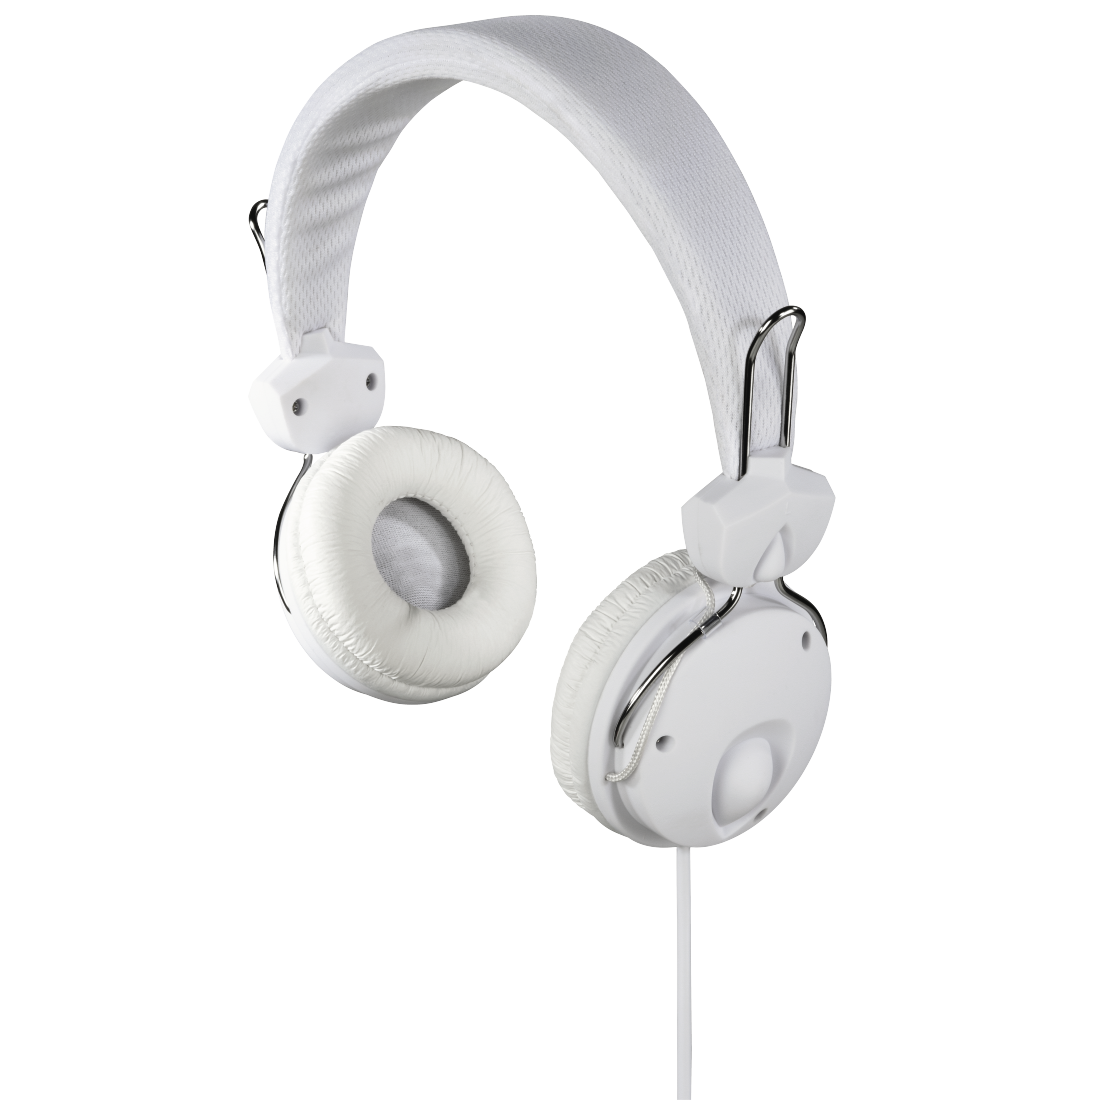 "abx High-Res Image - Hama, Casque stéréo supra-aural ""Fun4Music"", blanc"